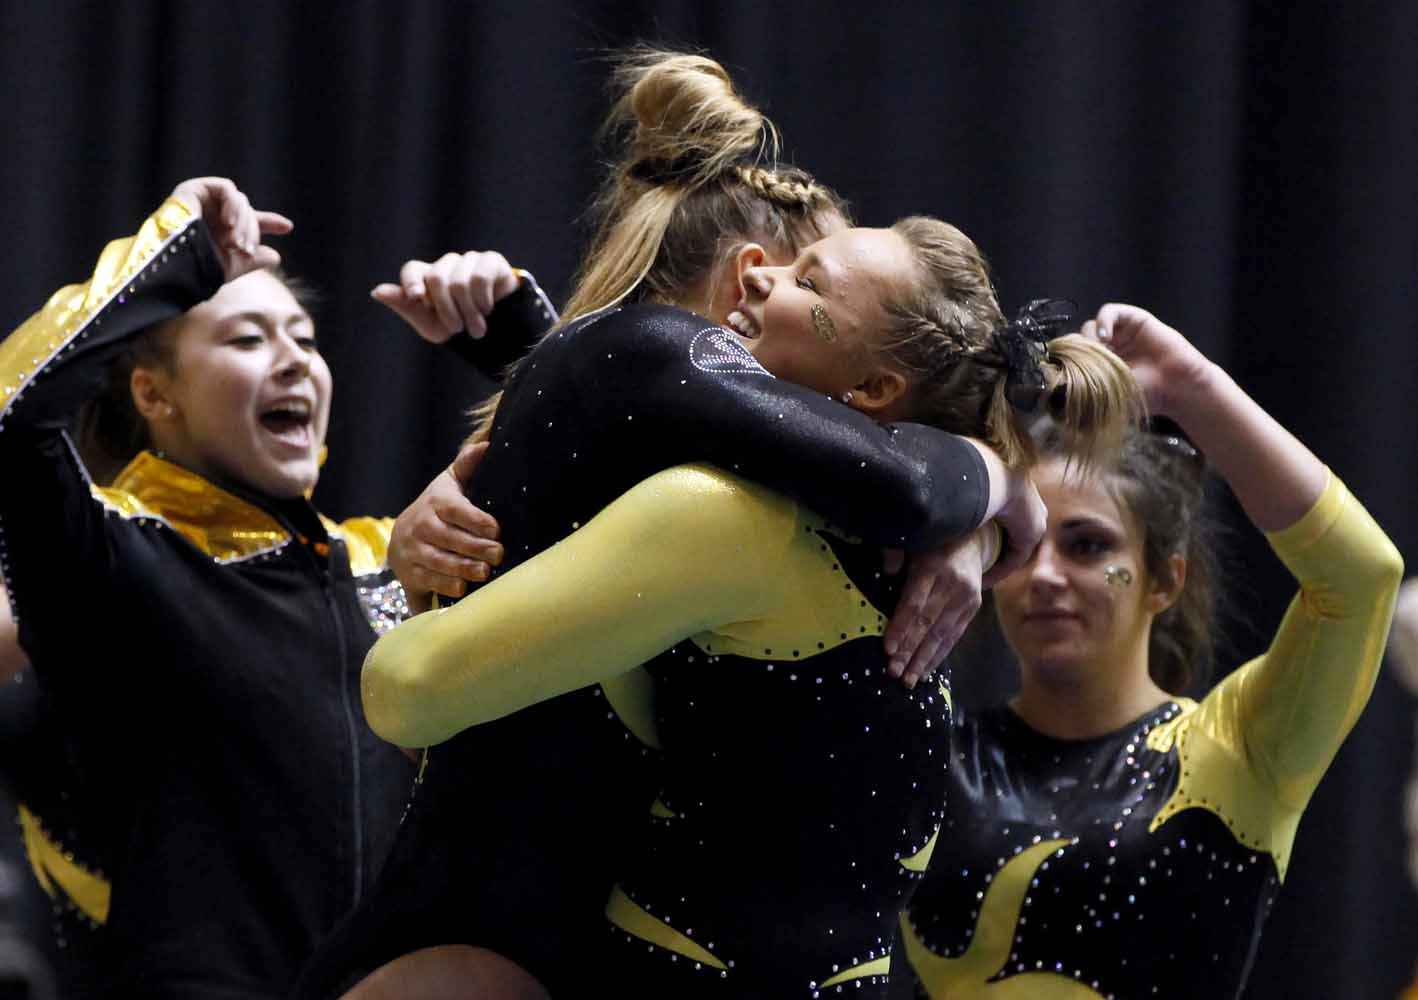 Mizzou freshman Britney Ward hugs freshman teammate Morgan Porter after sticking the landing to her balance beam performance Friday evening, Feb. 19, 2016 at the Hearnes Center.